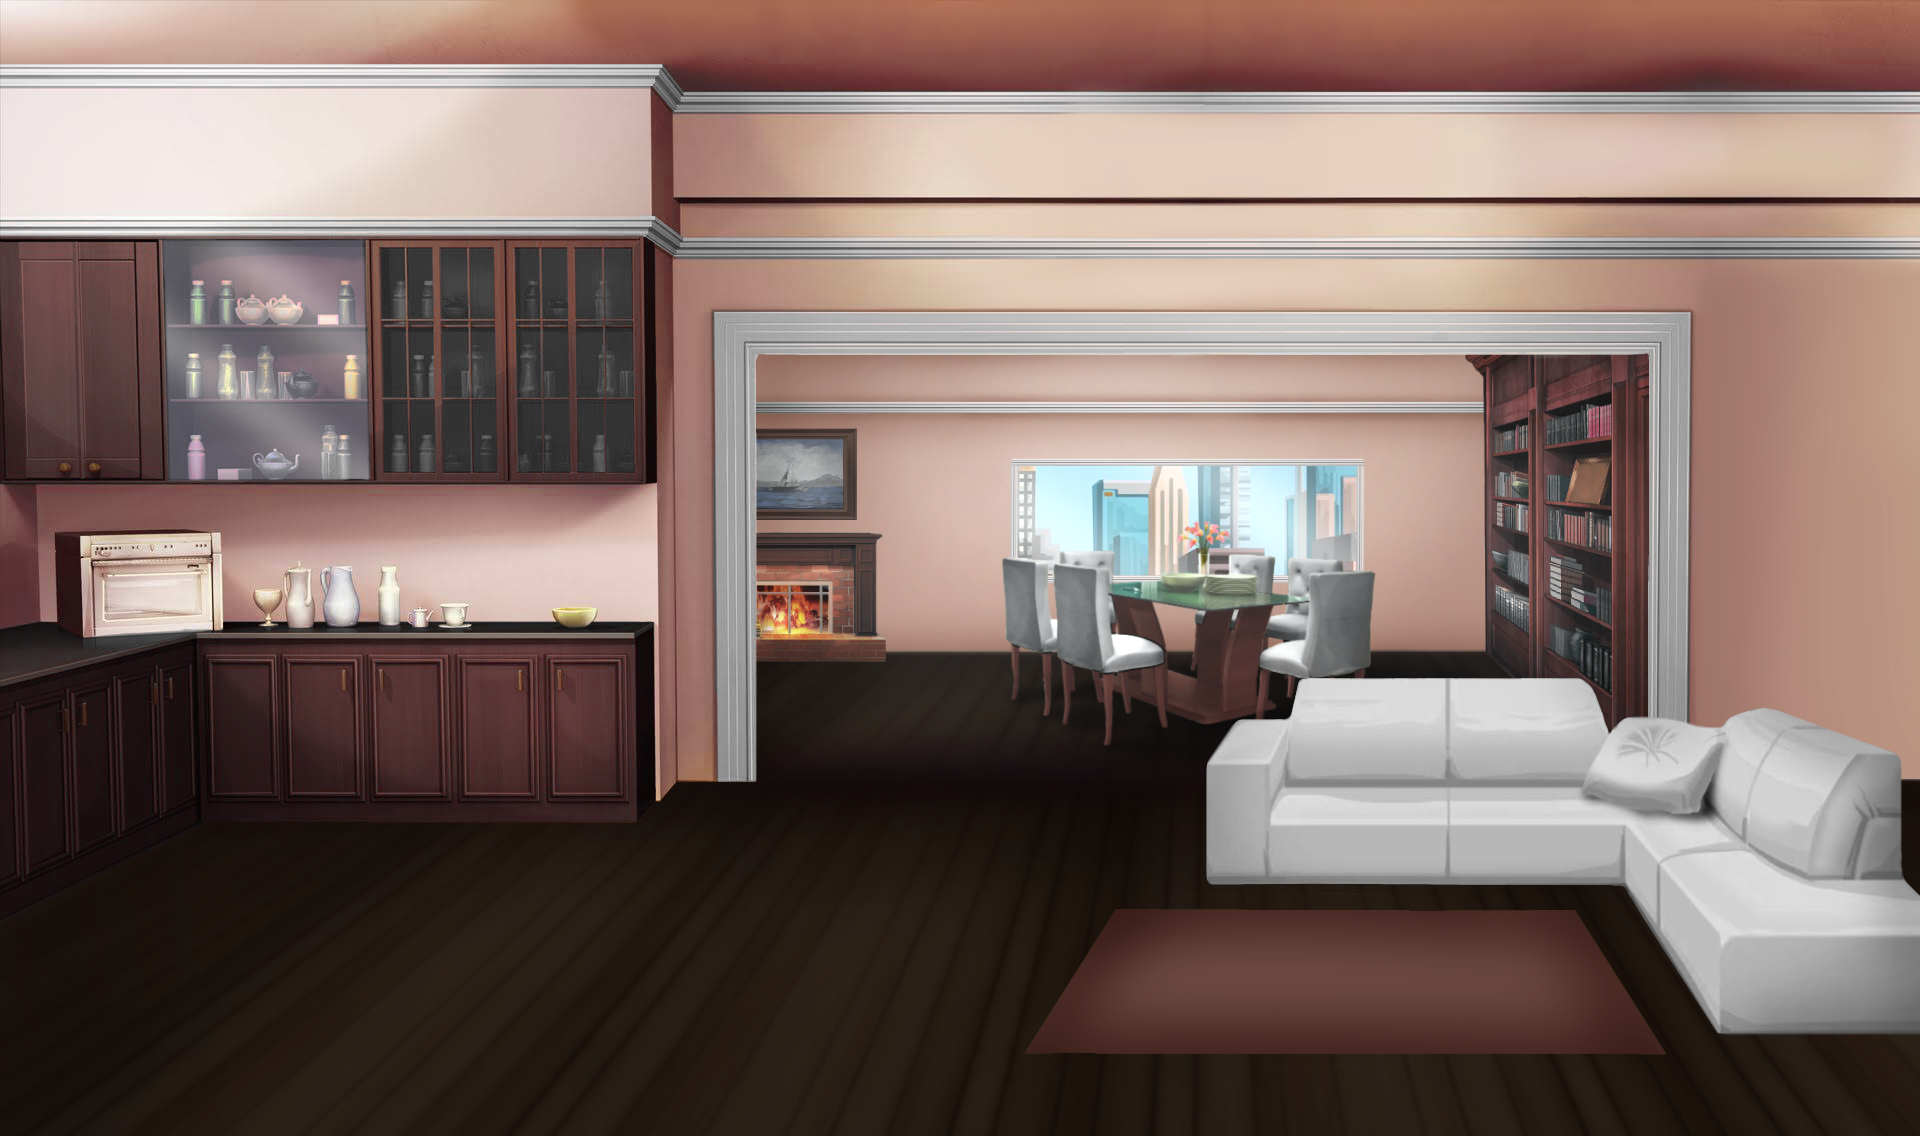 Inside The House Anime Wallpapers Wallpaper Cave